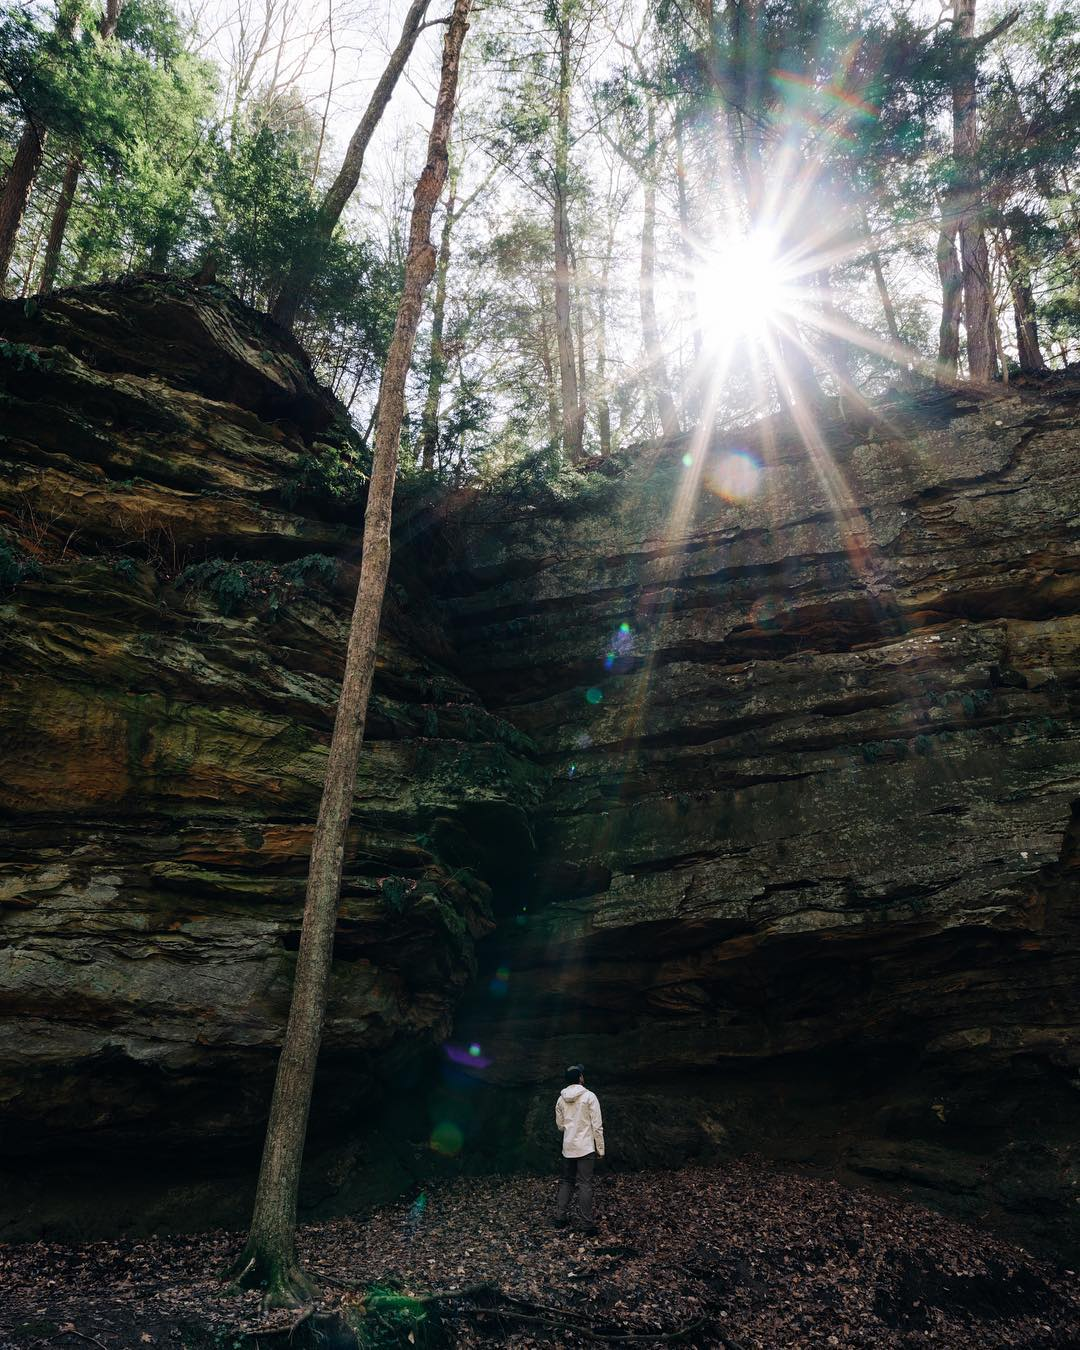 There are over 8 state parks about an hour drive radius from Indy. Shades State Park, my personal favorite, offers terrain you generally don't see in Indiana. Grab a to-go lunch and some snacks to take a day trip out here for all the hiking and canoeing possibilities.